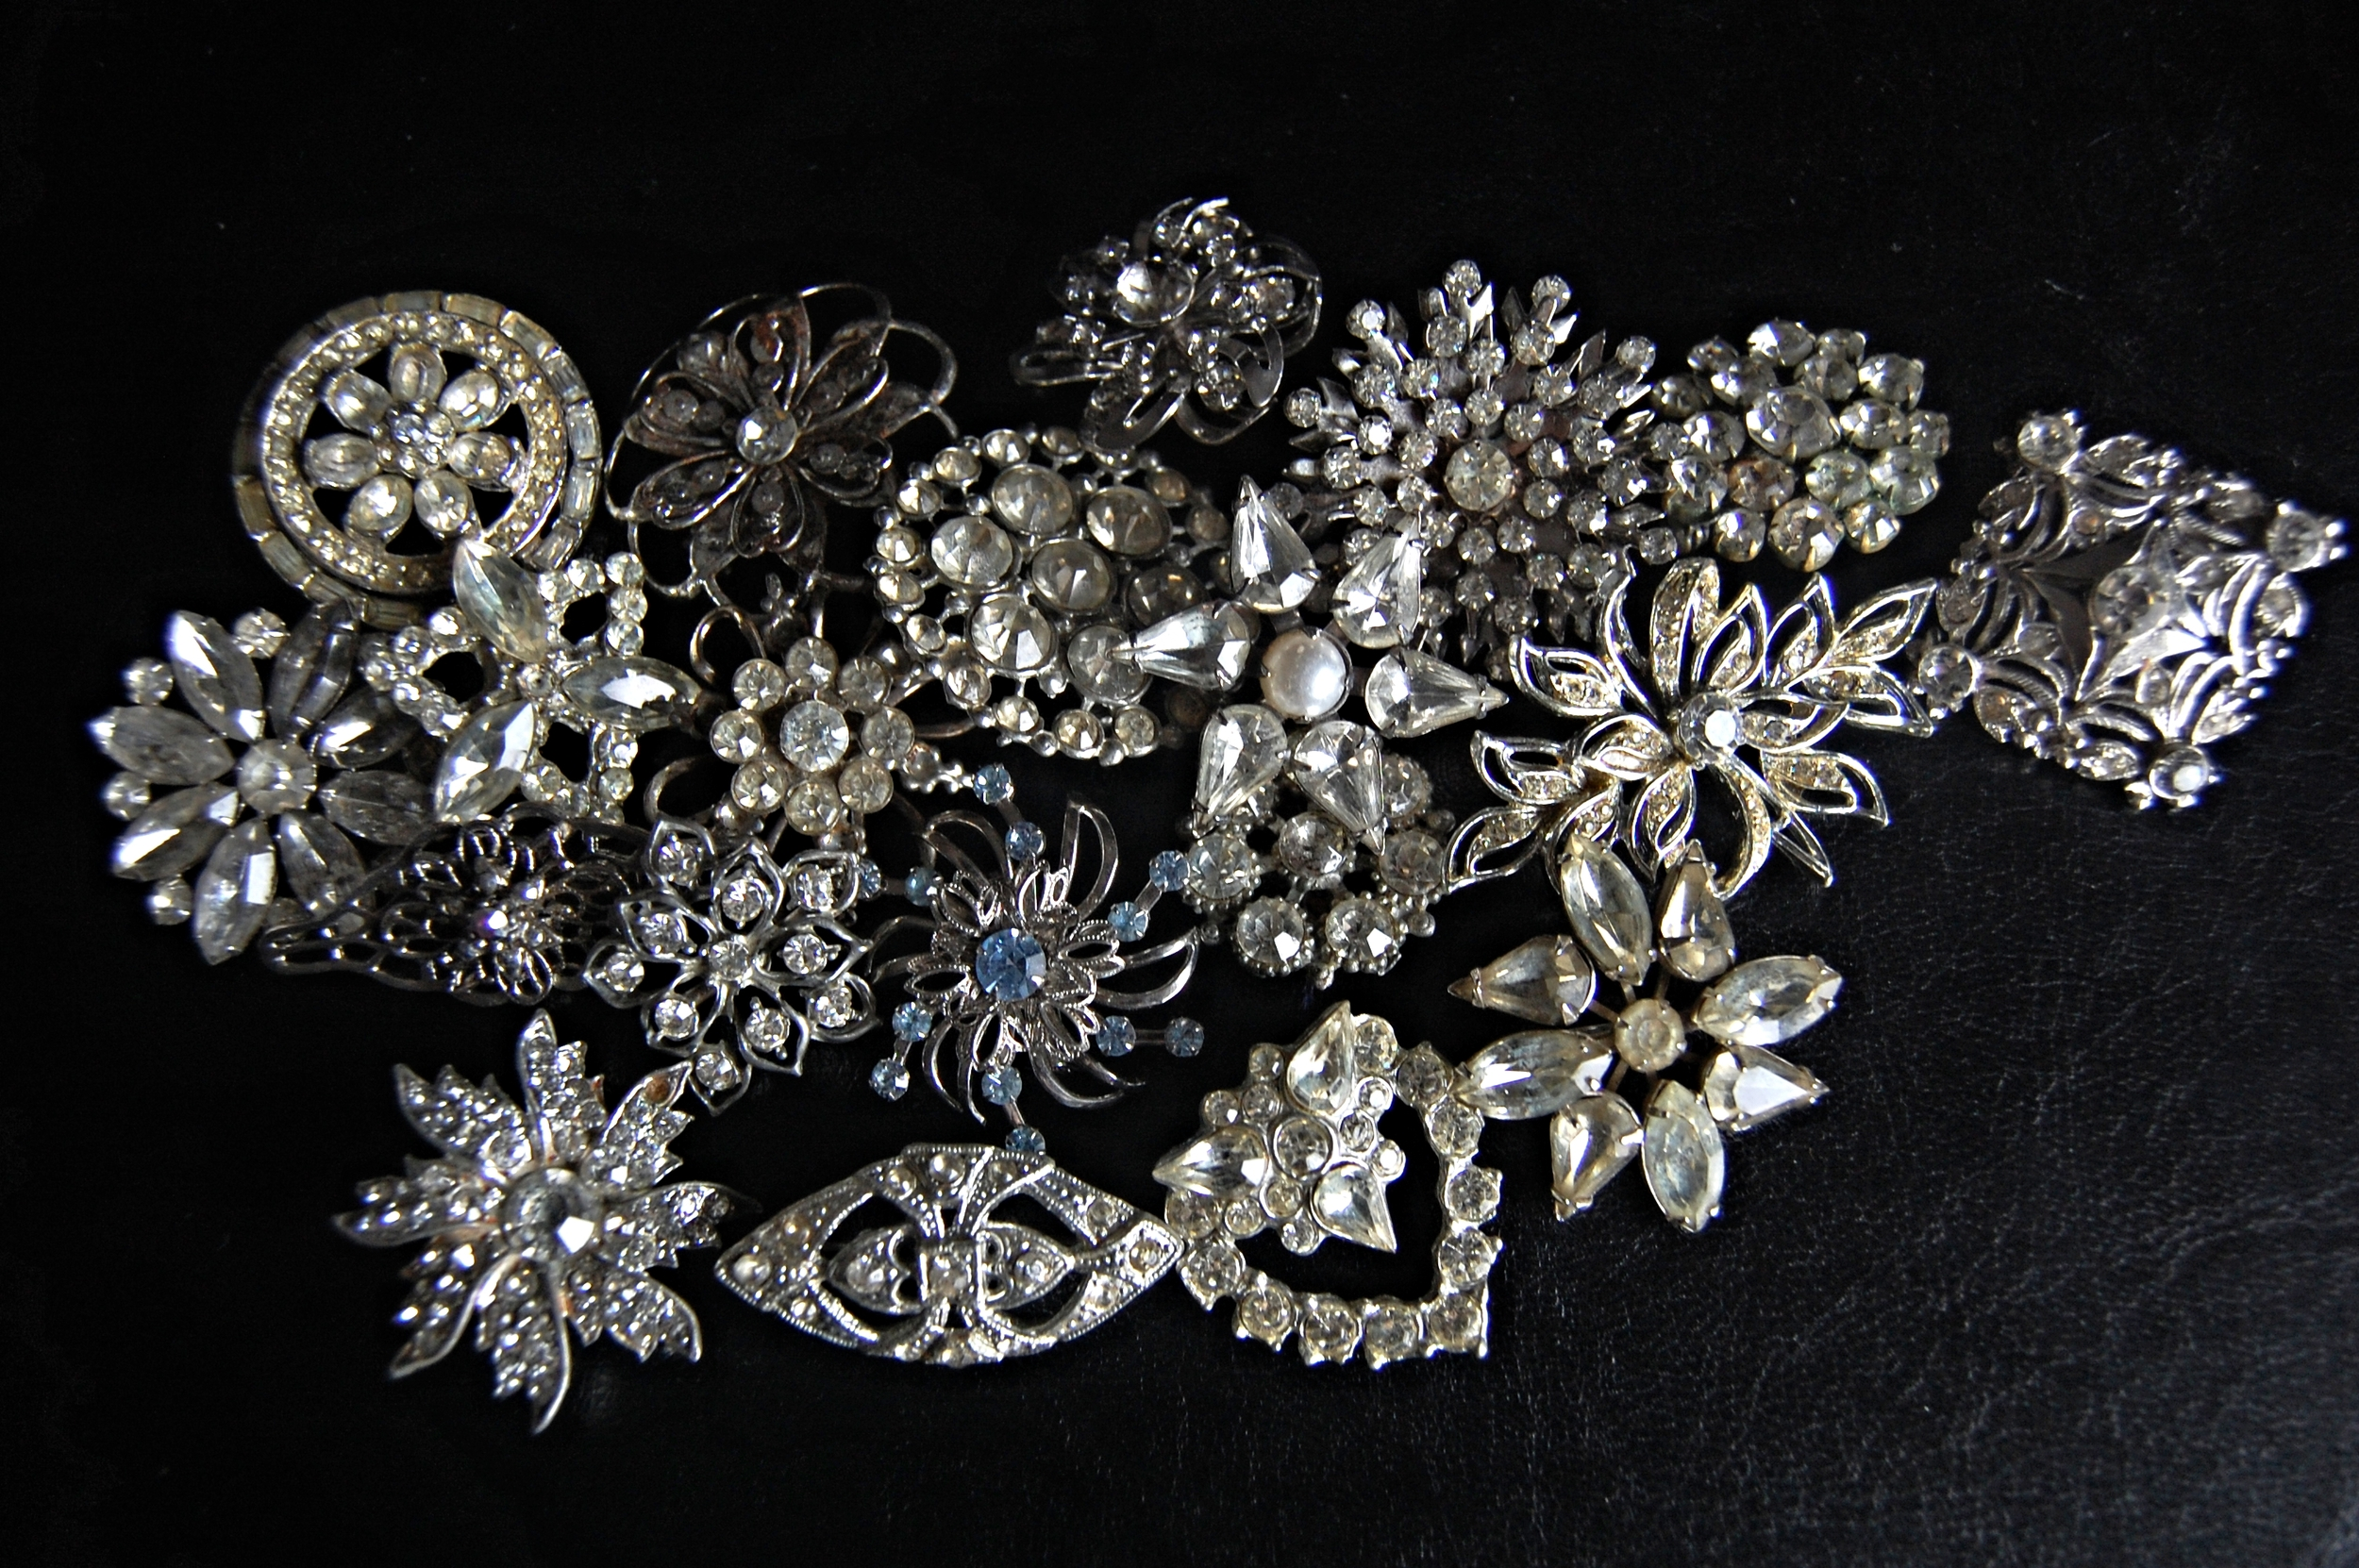 Antique brooches from 1920s-60s